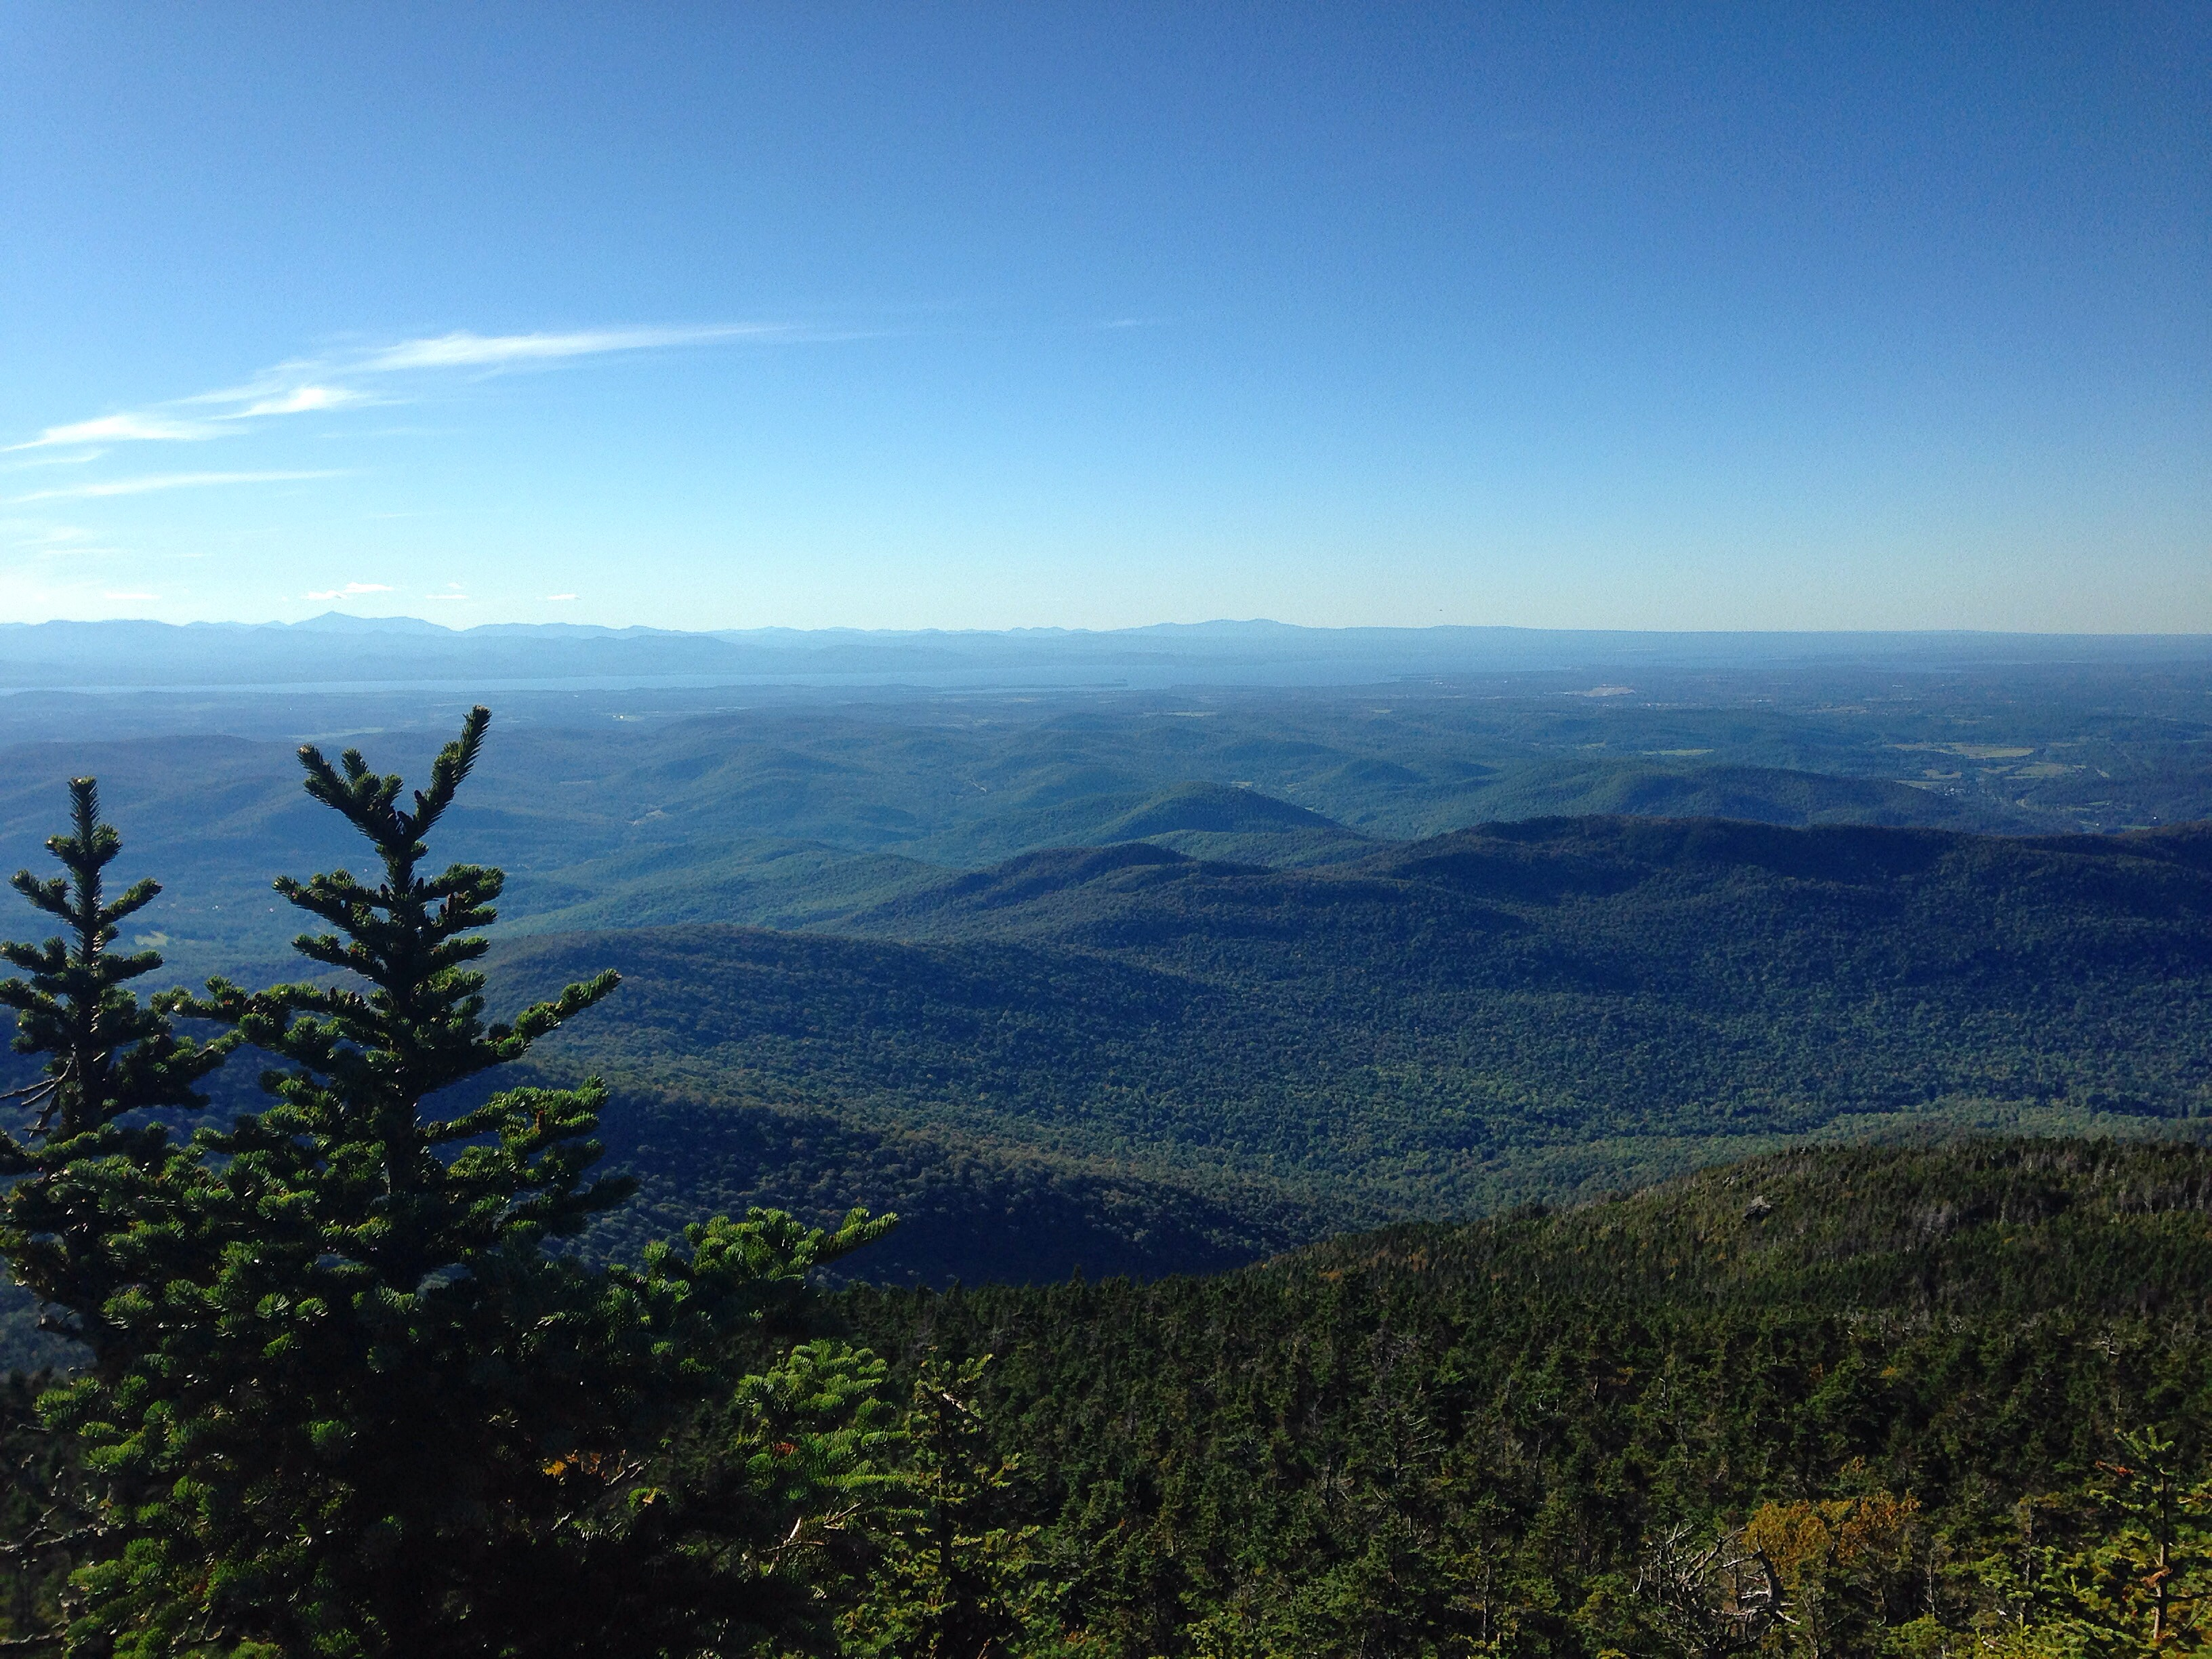 Hiking Camel's Hump Mountain in Vermont